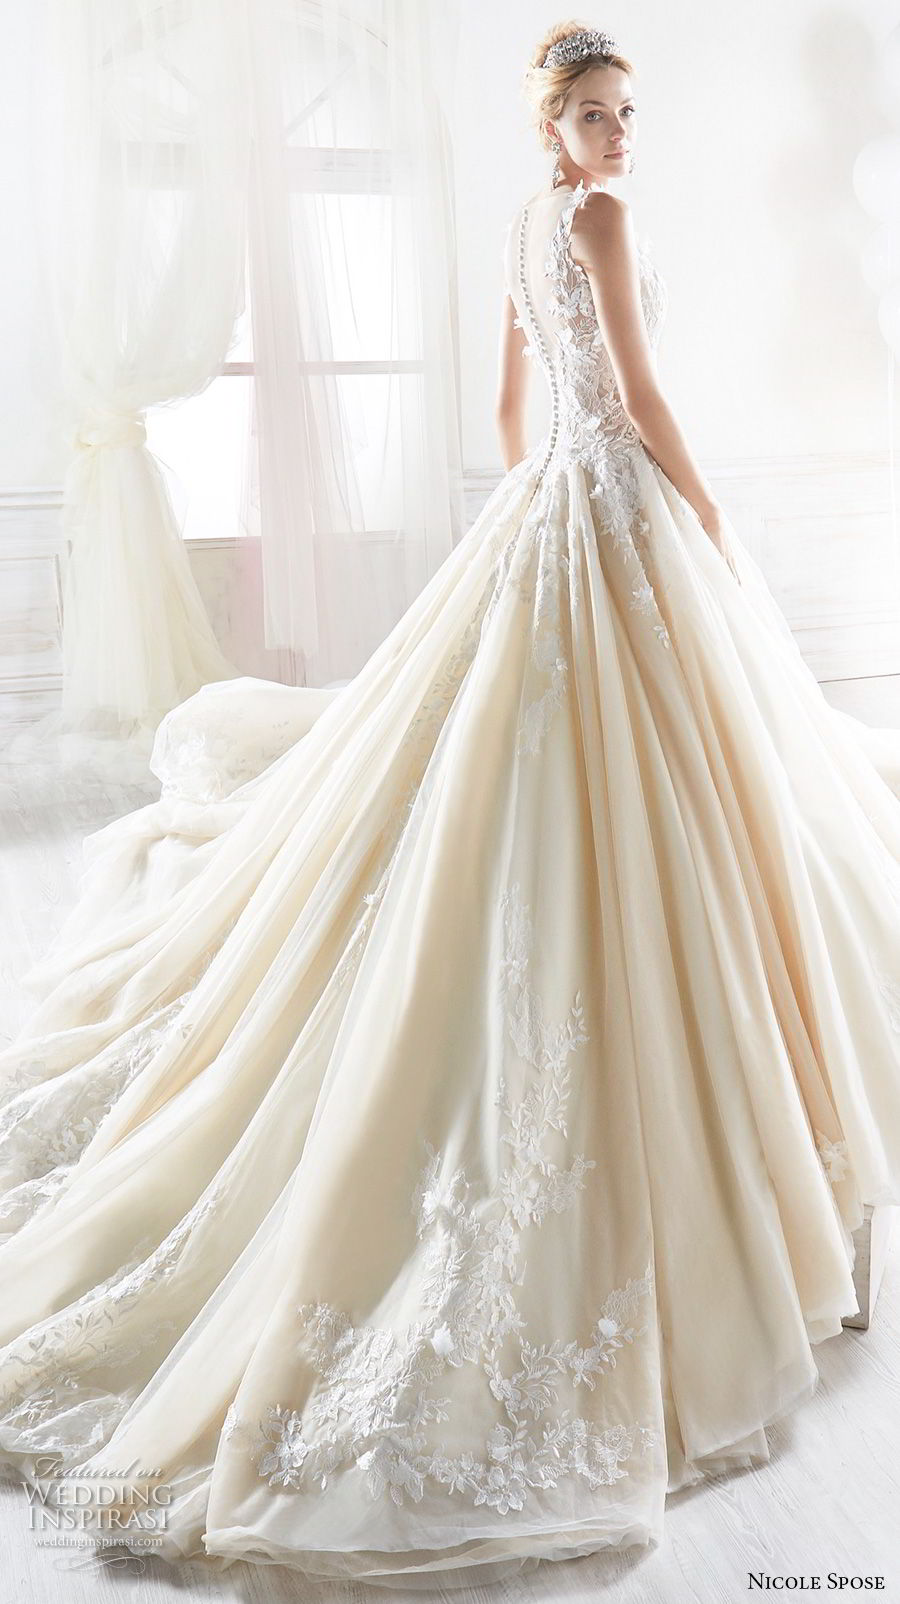 nicole spose 2018 bridal sleeveless illusion bateau v neck heavily embellished bodice princess champagne a line wedding dress sheer button back royal train (5) bv